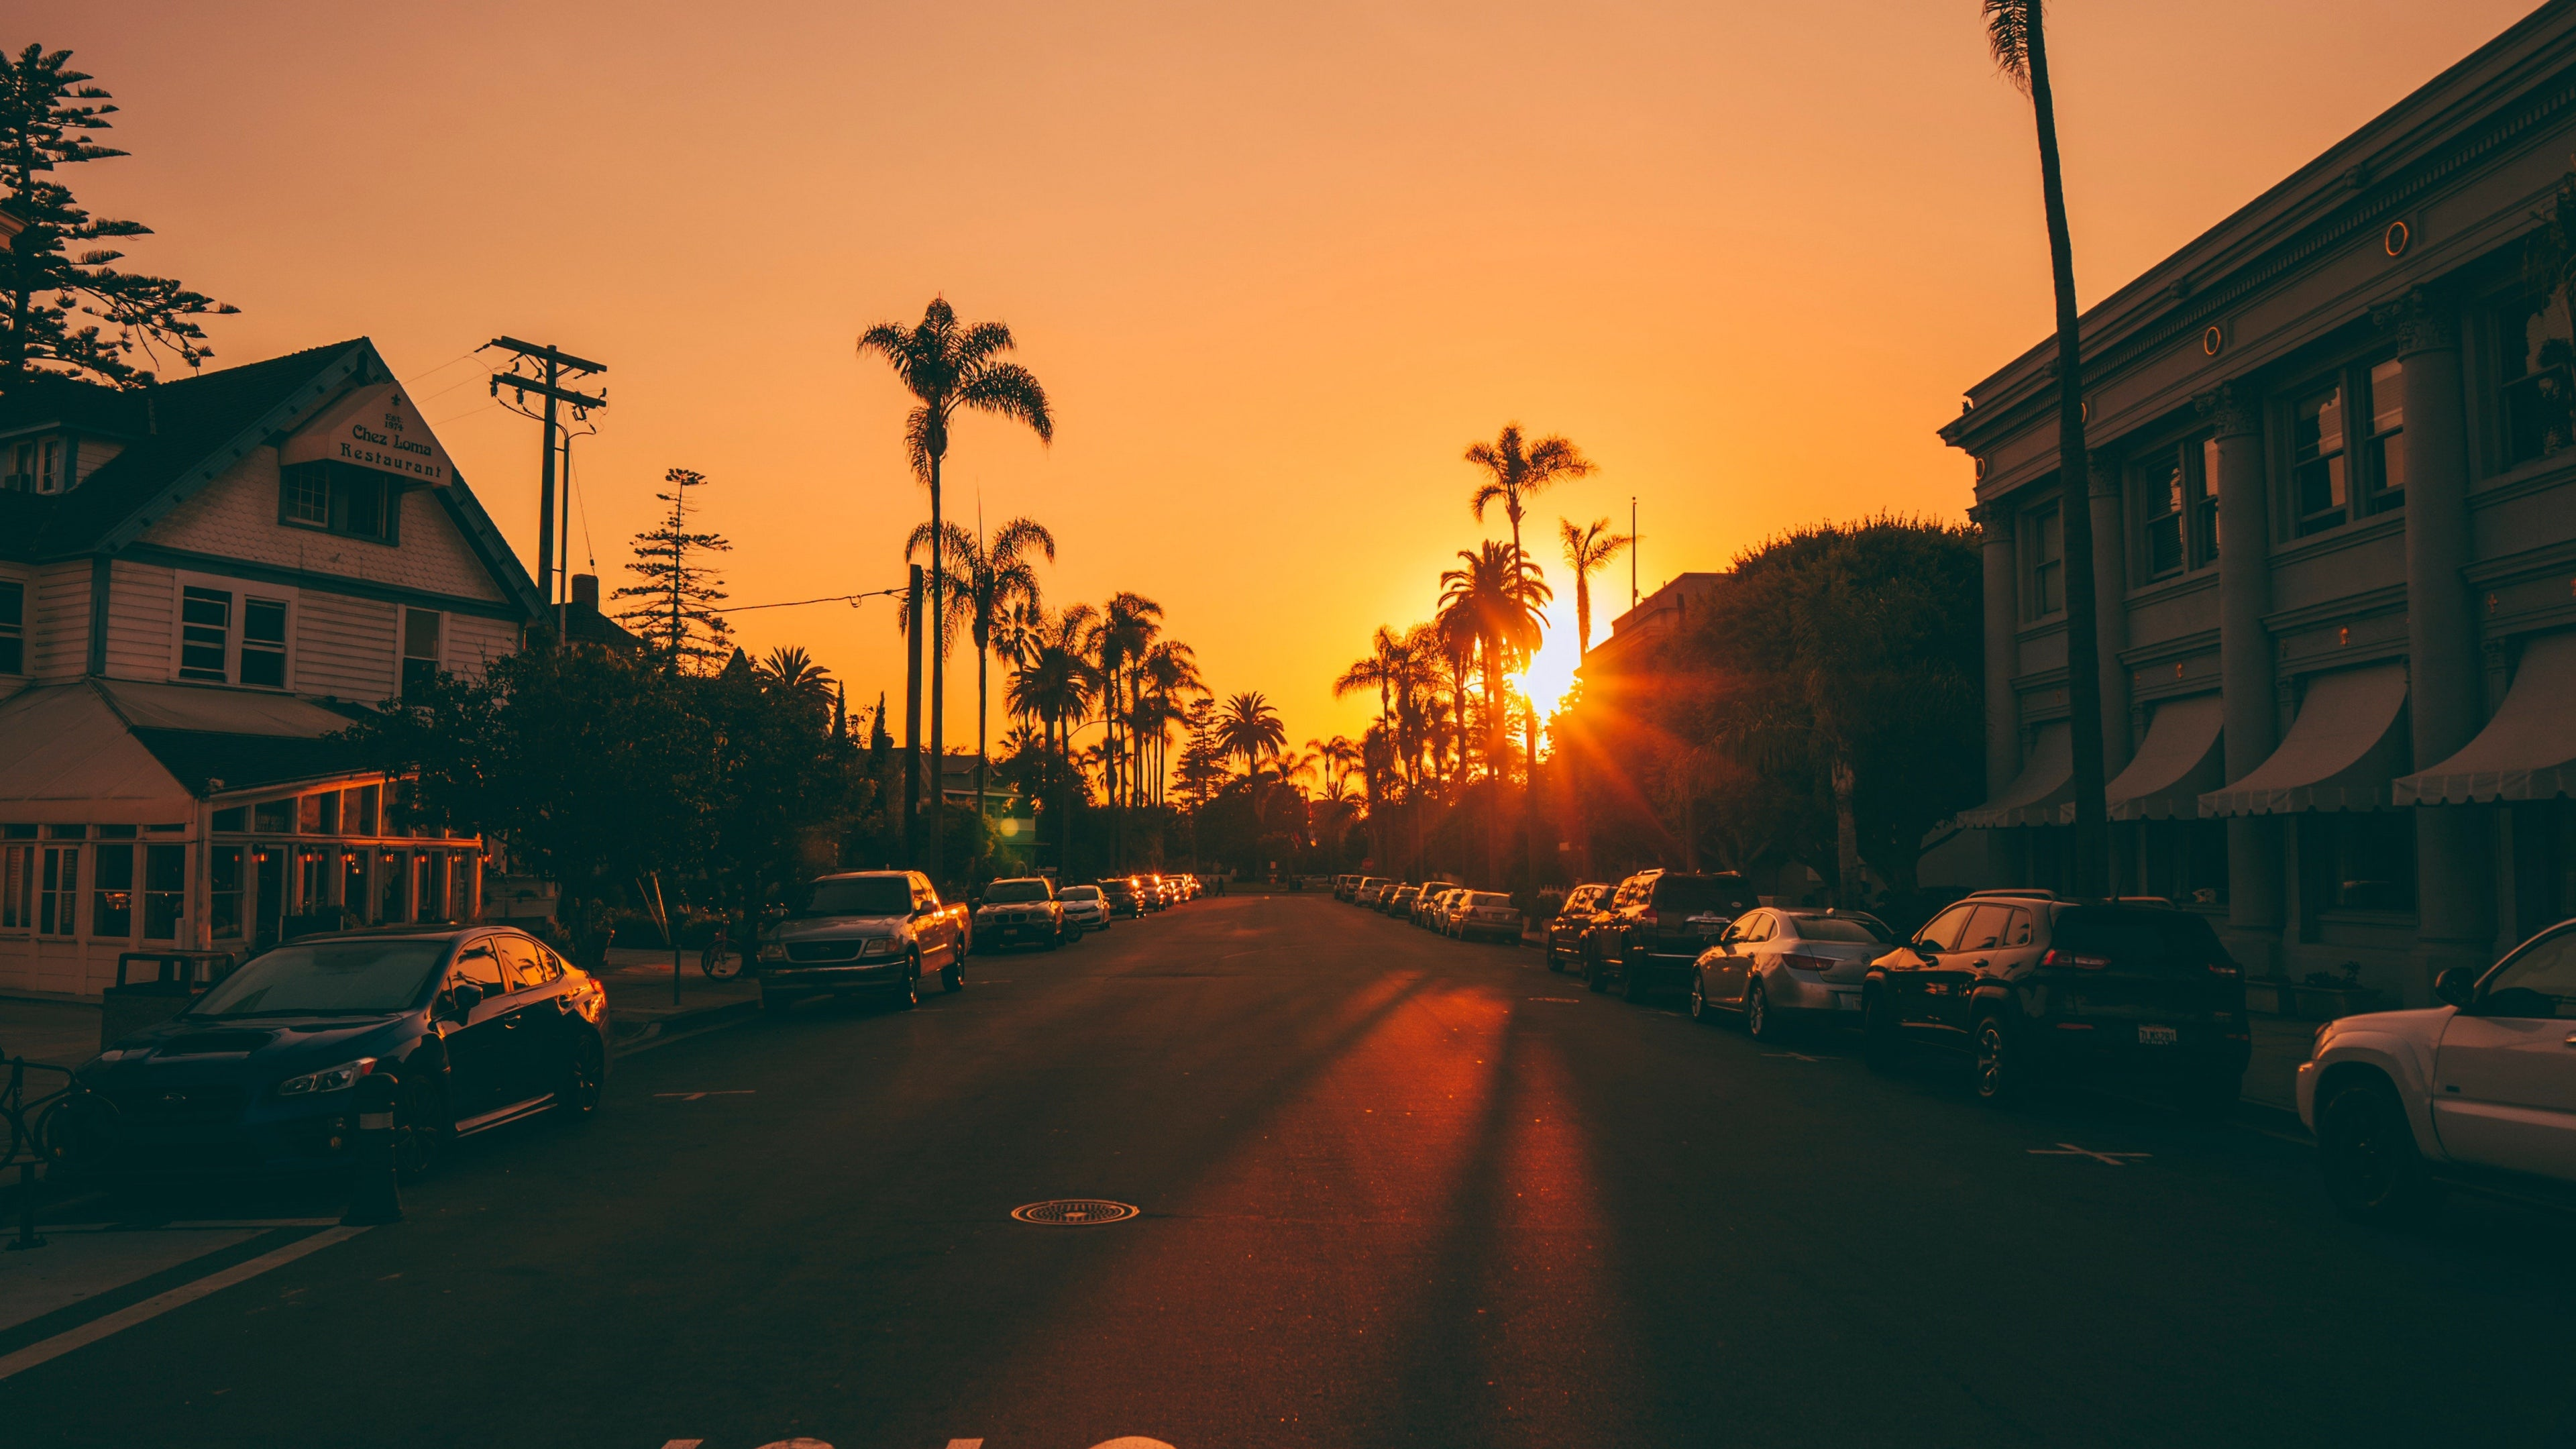 Street Sunset Palm Trees 4k Wallpaper